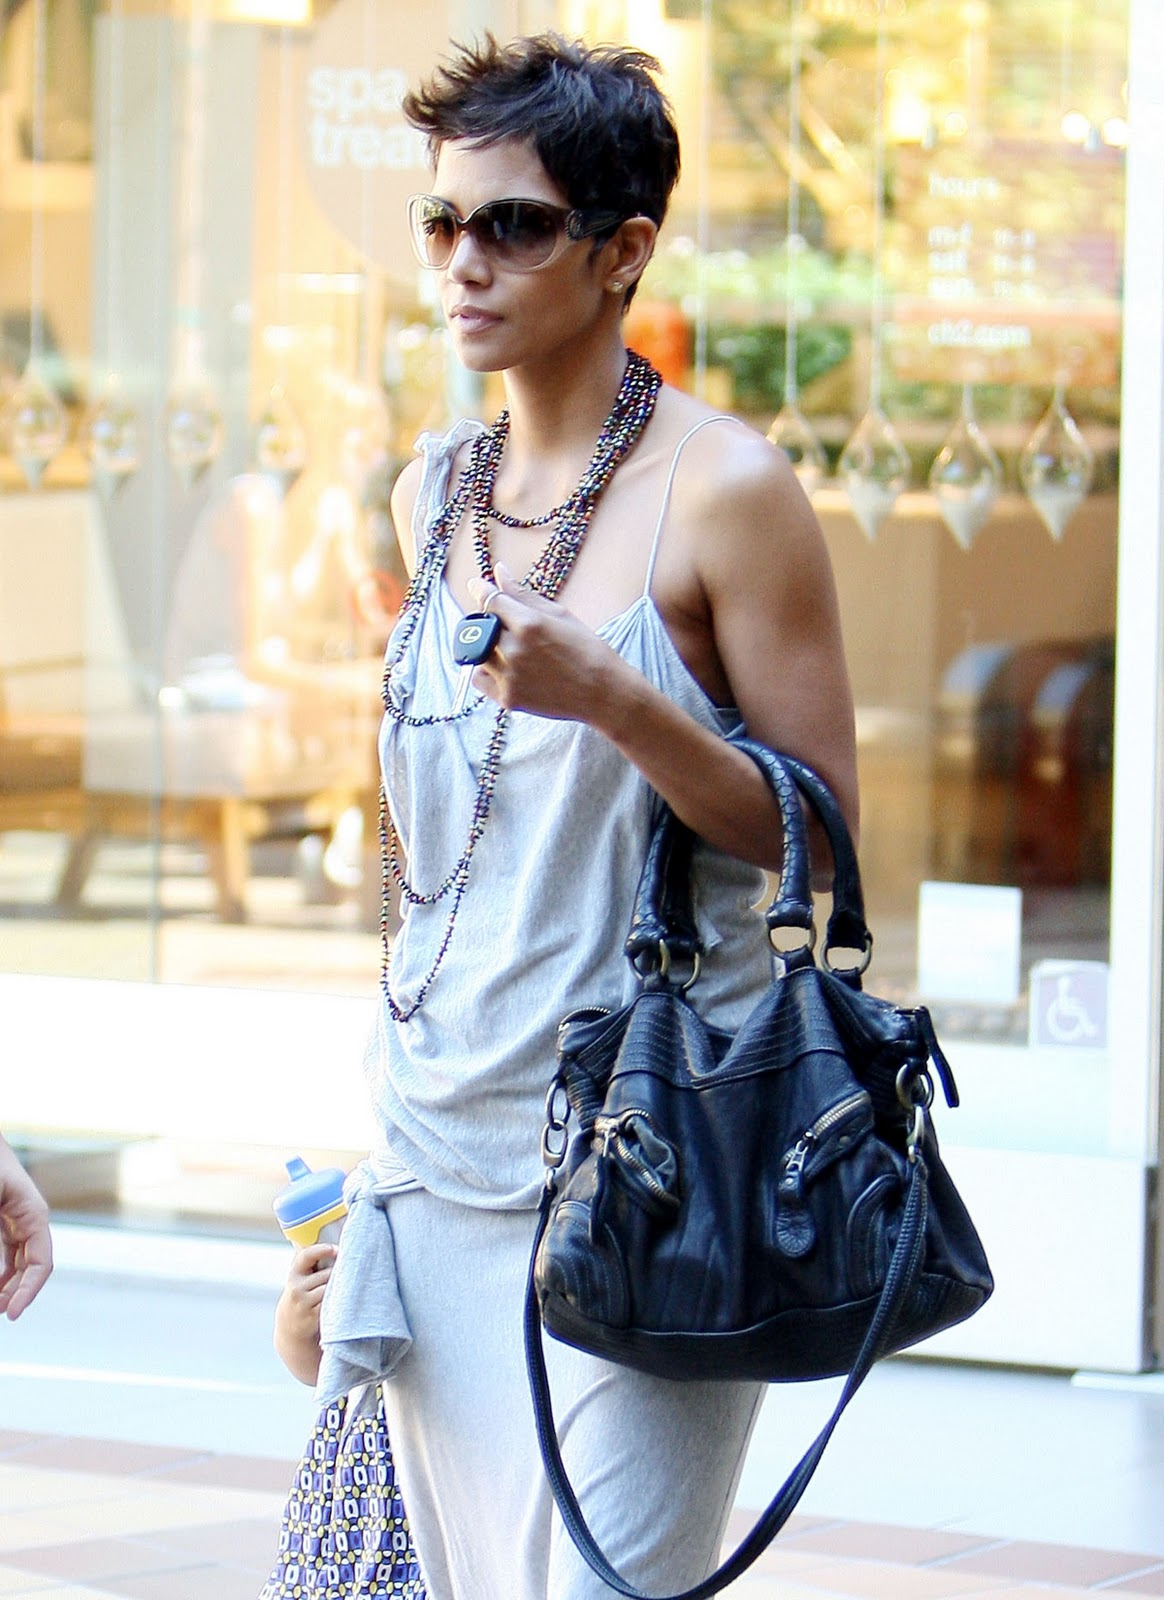 Pregnant Halle Berry Rocks Out Picture | Celebrity Baby ...